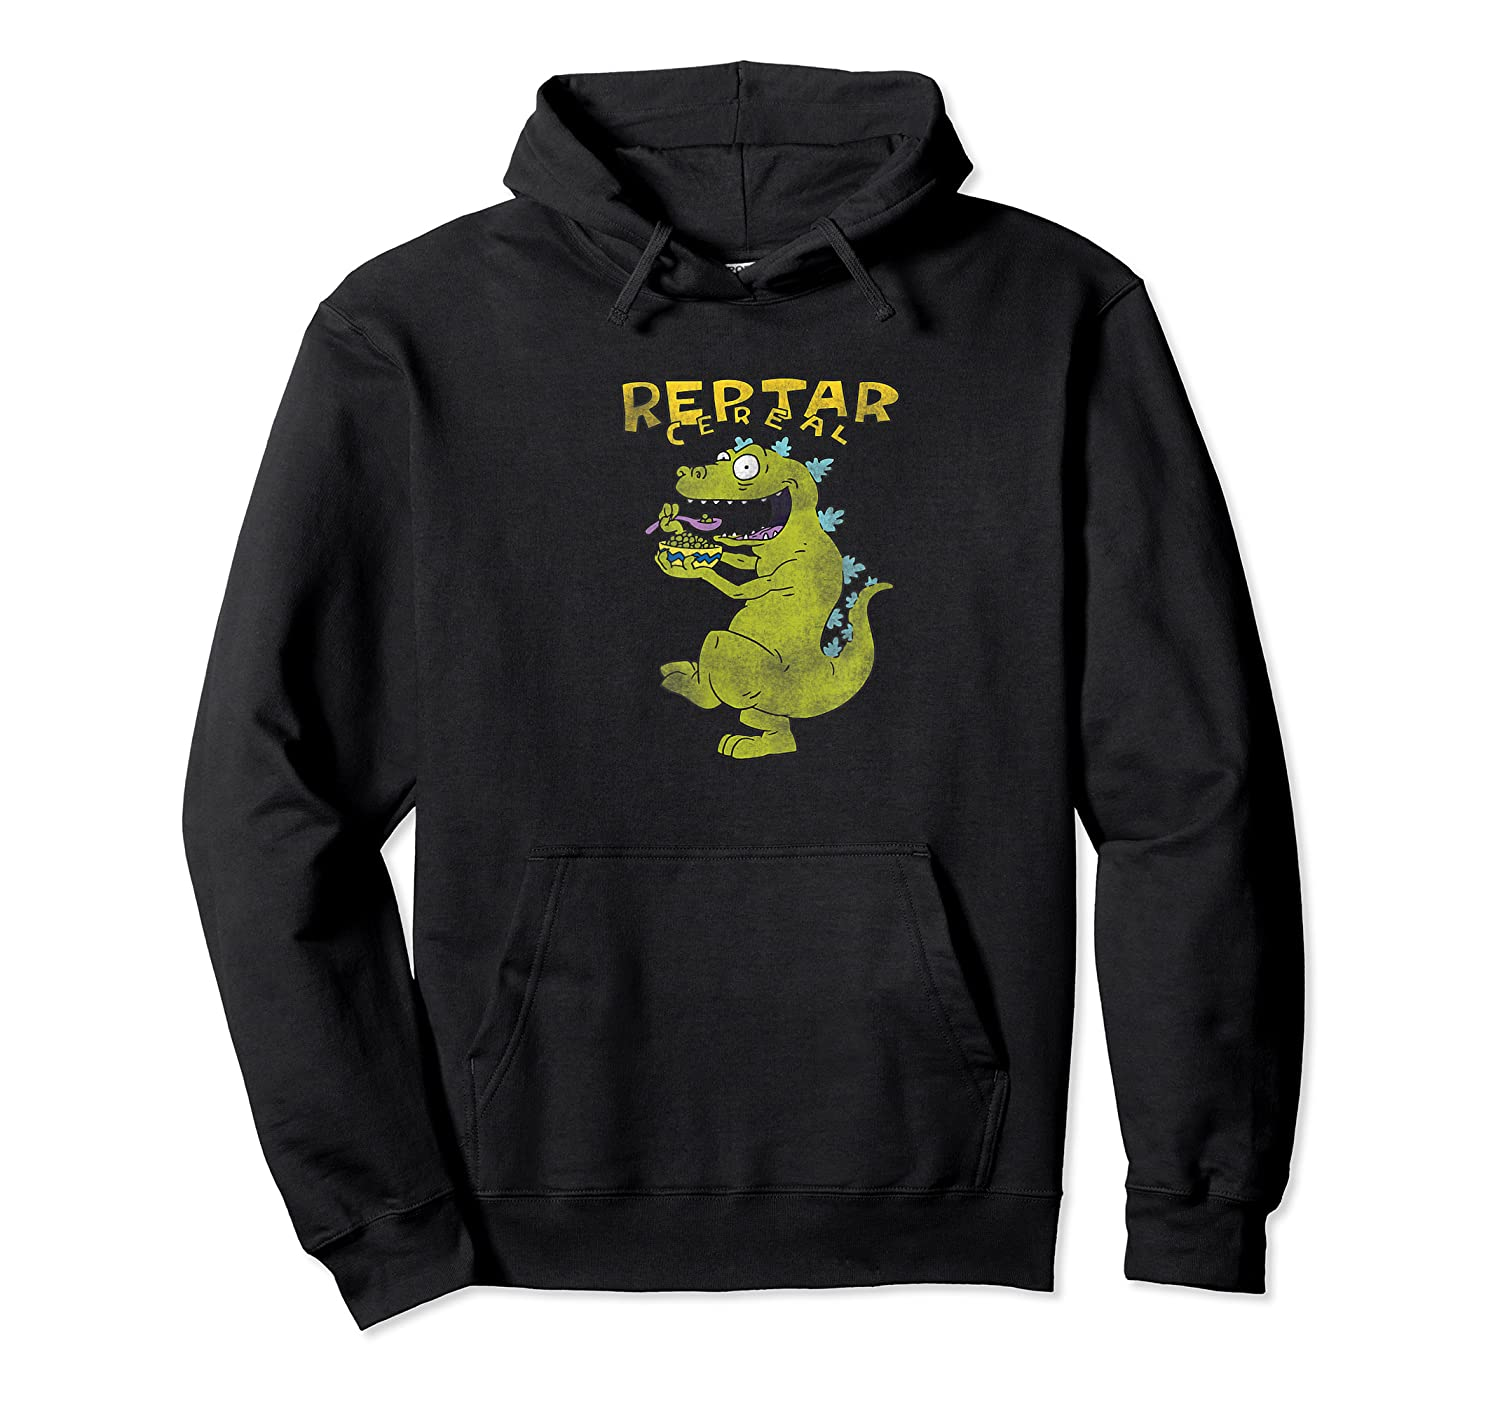 Reptar Eating Cereal With Text Reptar Cereal Shirts Unisex Pullover Hoodie